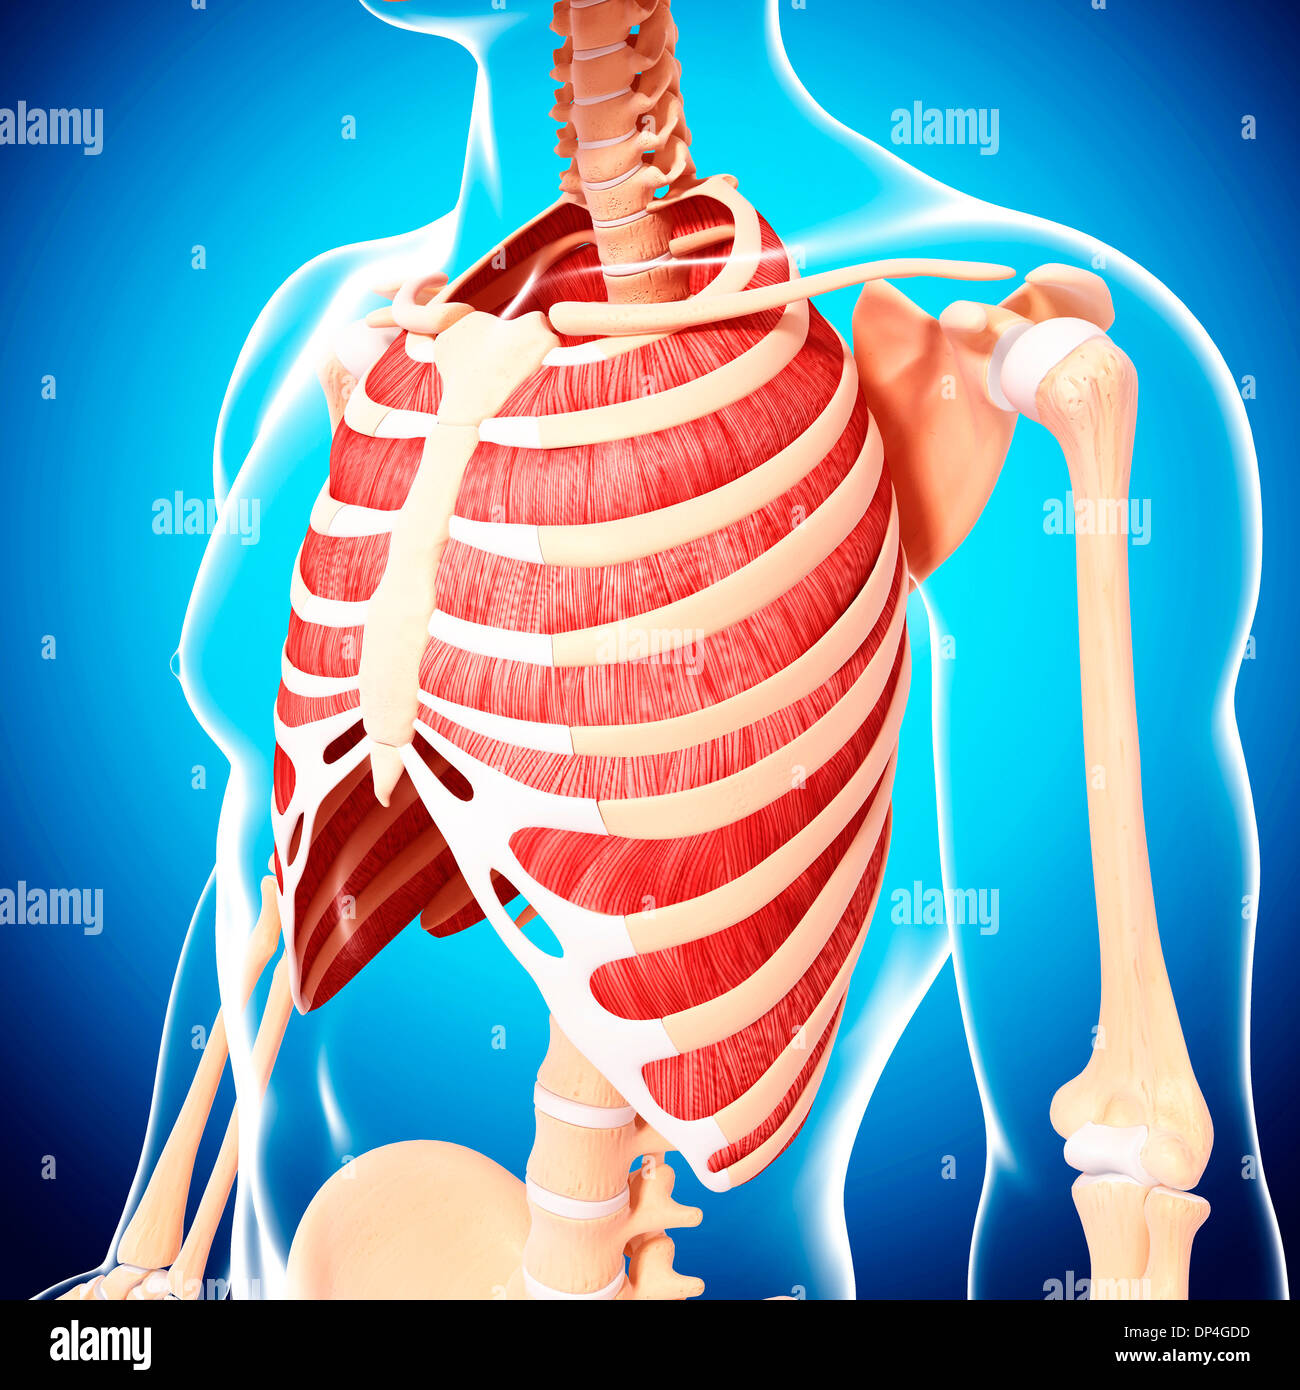 Intercostal Muscle Stock Photos Intercostal Muscle Stock Images